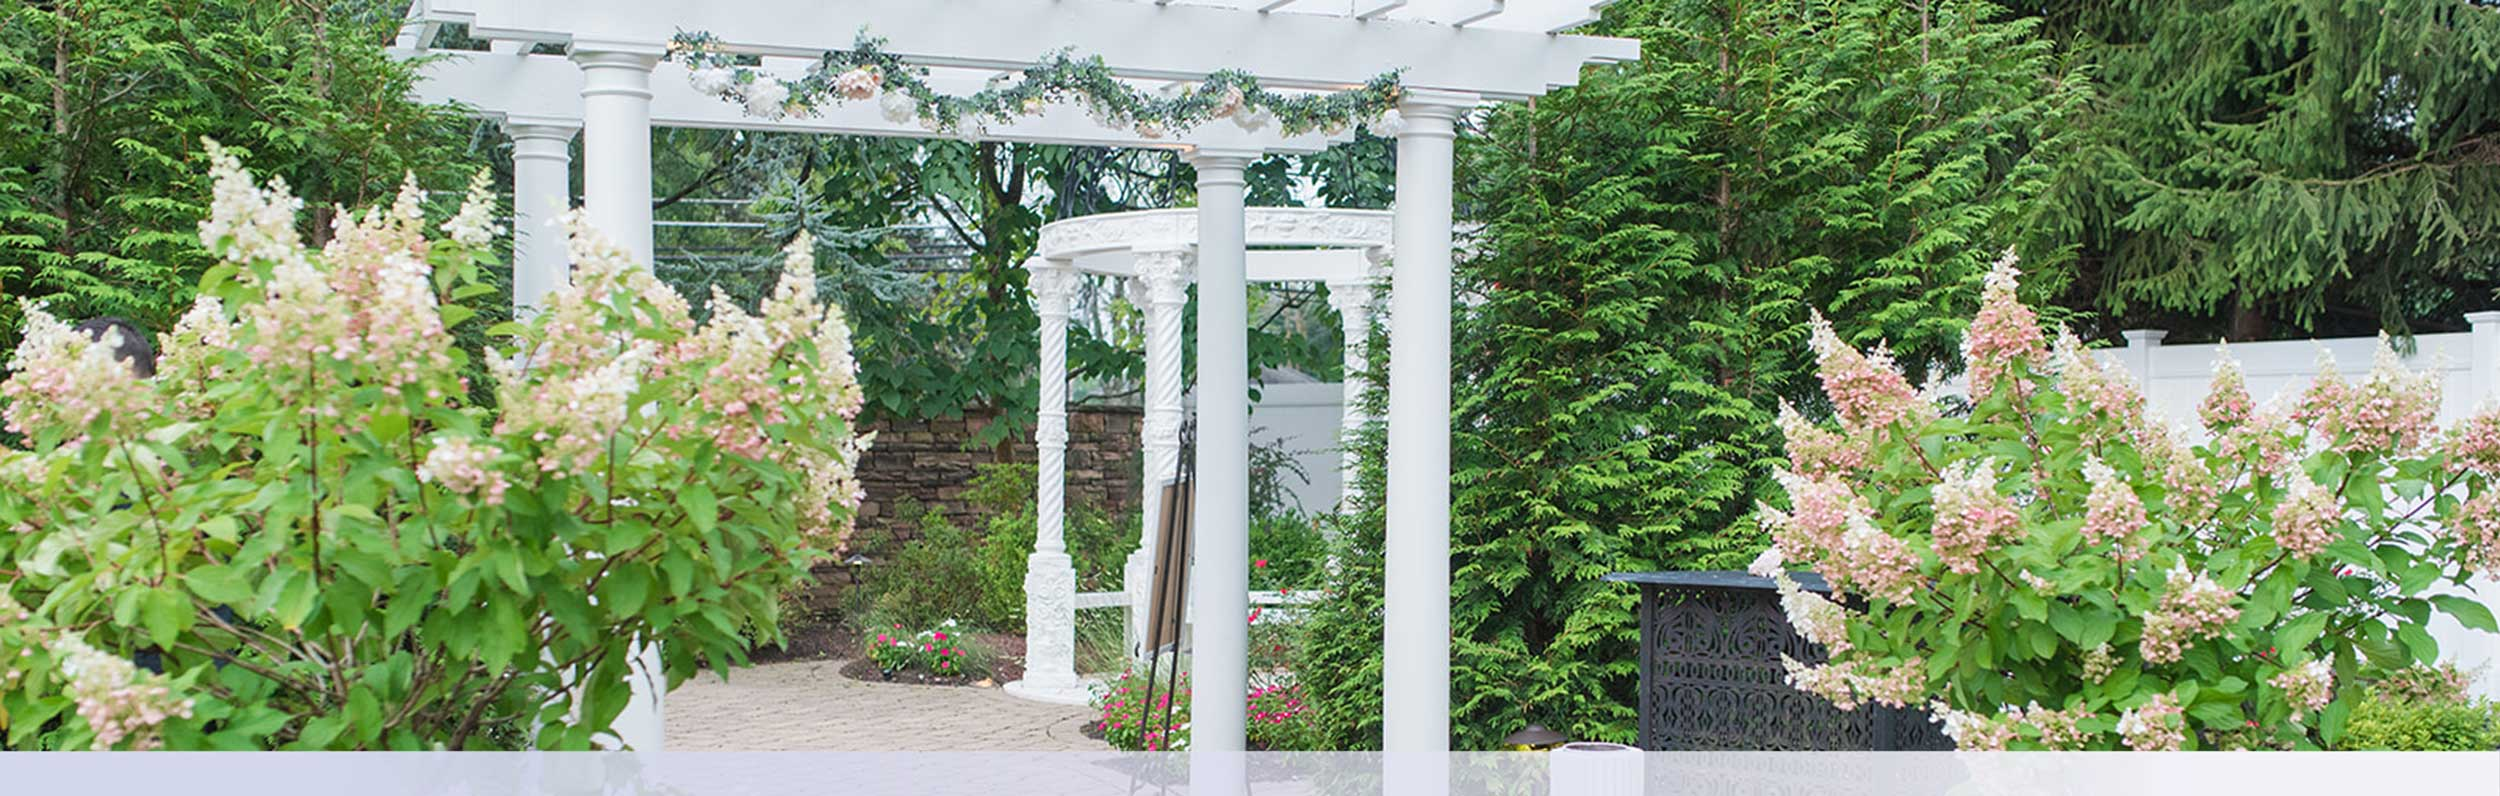 Amazing Outdoor Nj Wedding Venue Garden